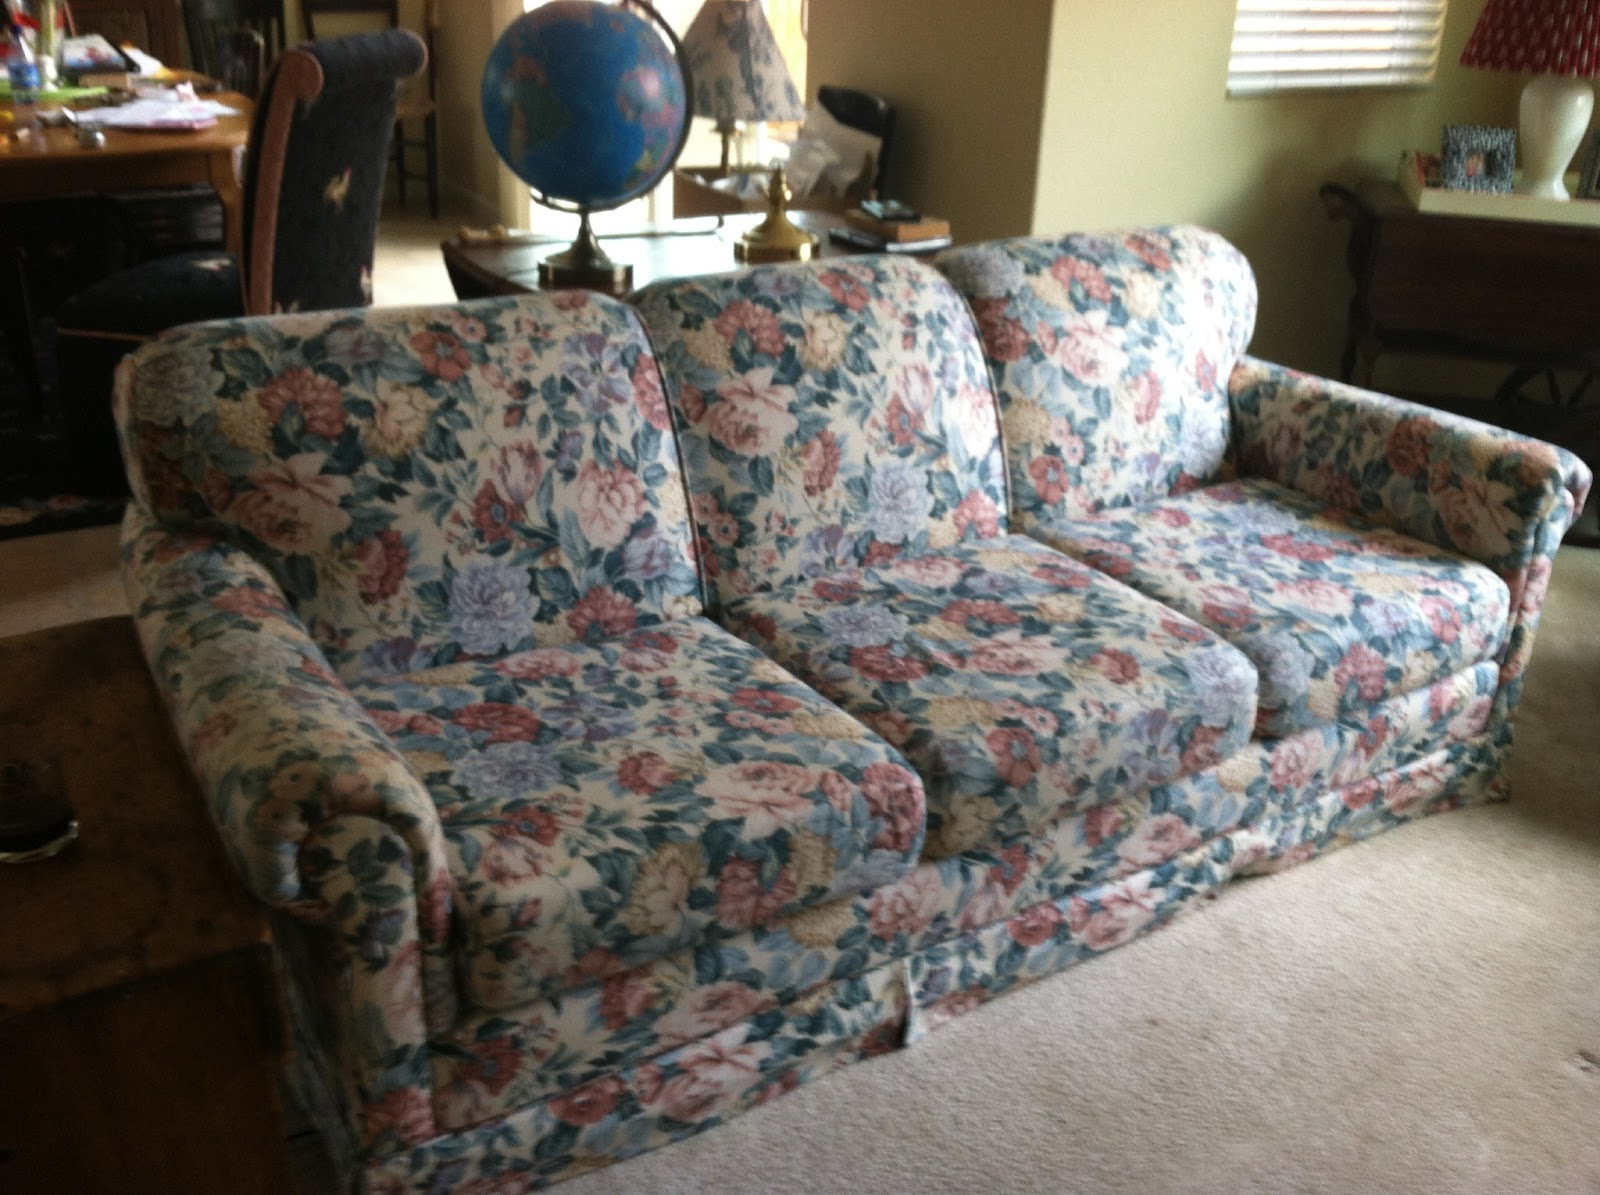 where can i donate my old sofa grey microfiber sectional with chaise goosegirl sews the new slipcover for ugly